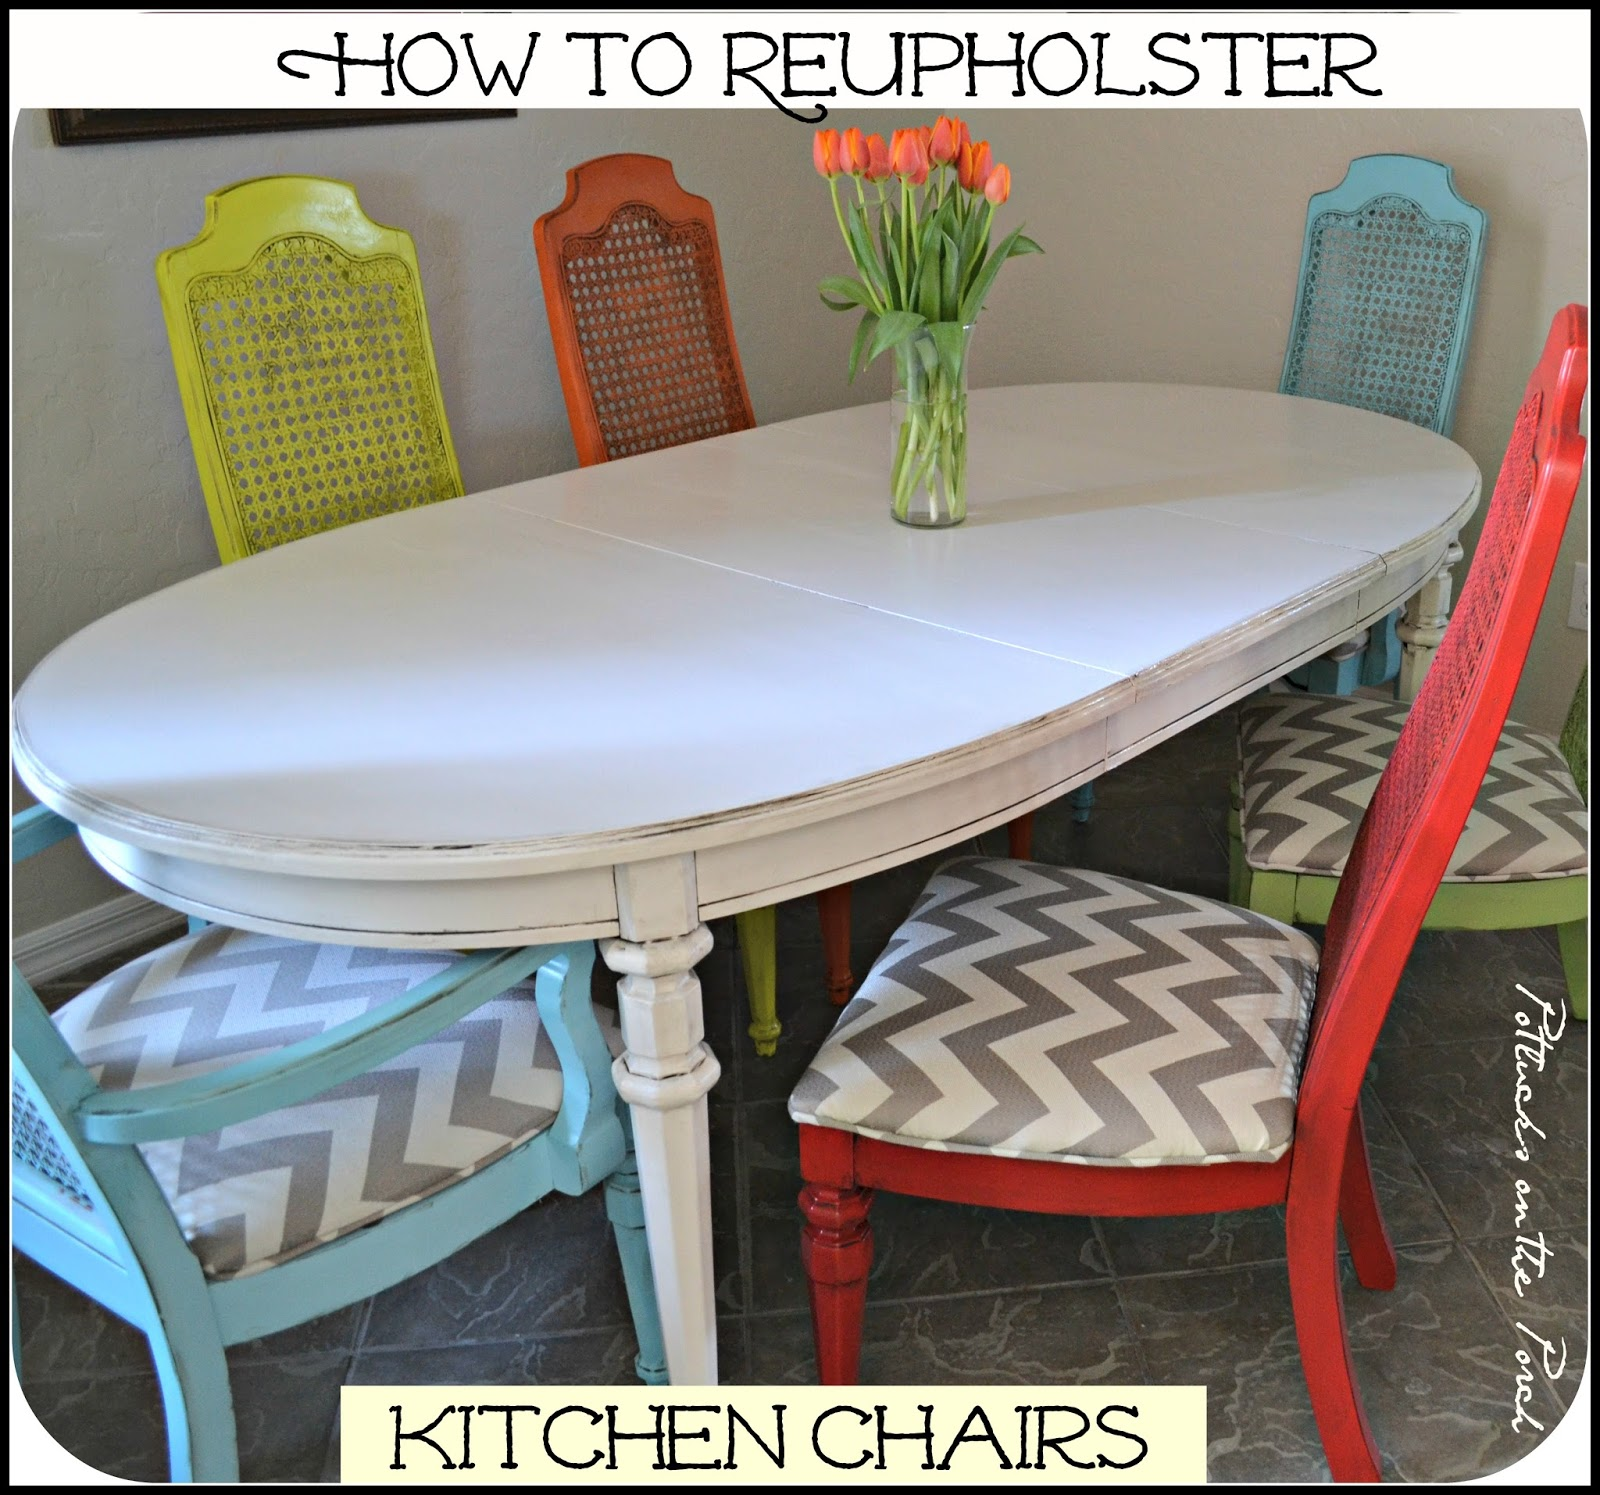 How To Recover Dining Room Chairs With Piping Tall Breakfast Table And Potlucks On The Porch Reupholster Kitchen